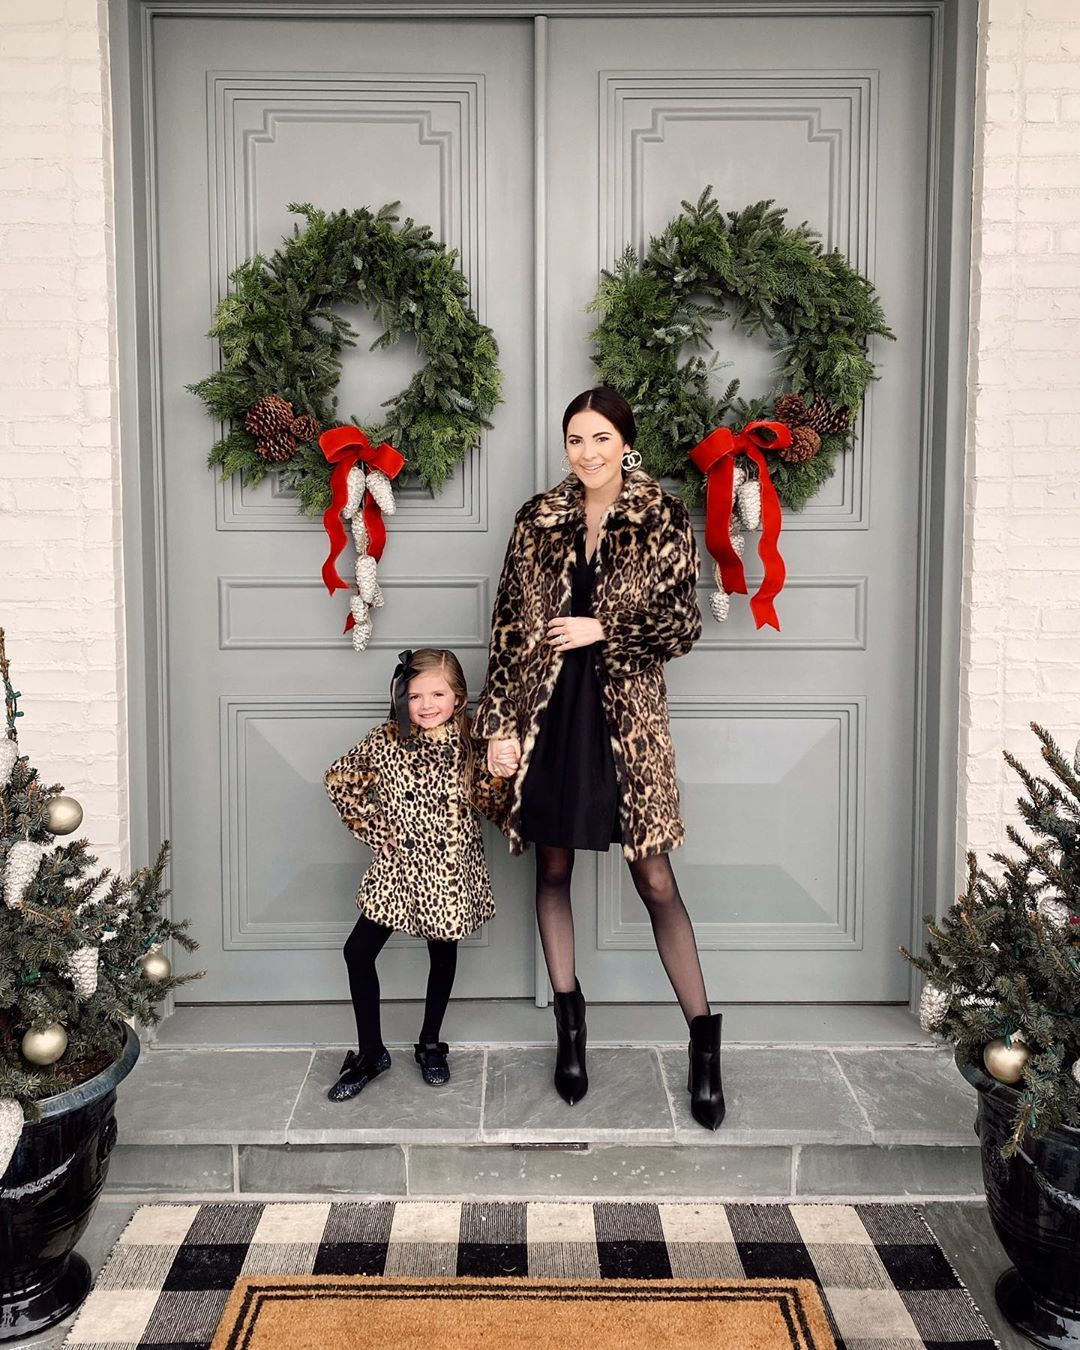 "Rach Parcell (Pink Peonies) on Instagram: ""Today's Sunday best, twinning in our leopard coats!! I've linked our outfits in my stories. 🐆🖤 #myrpdress #leopard #mommyandme #sundaybest"""